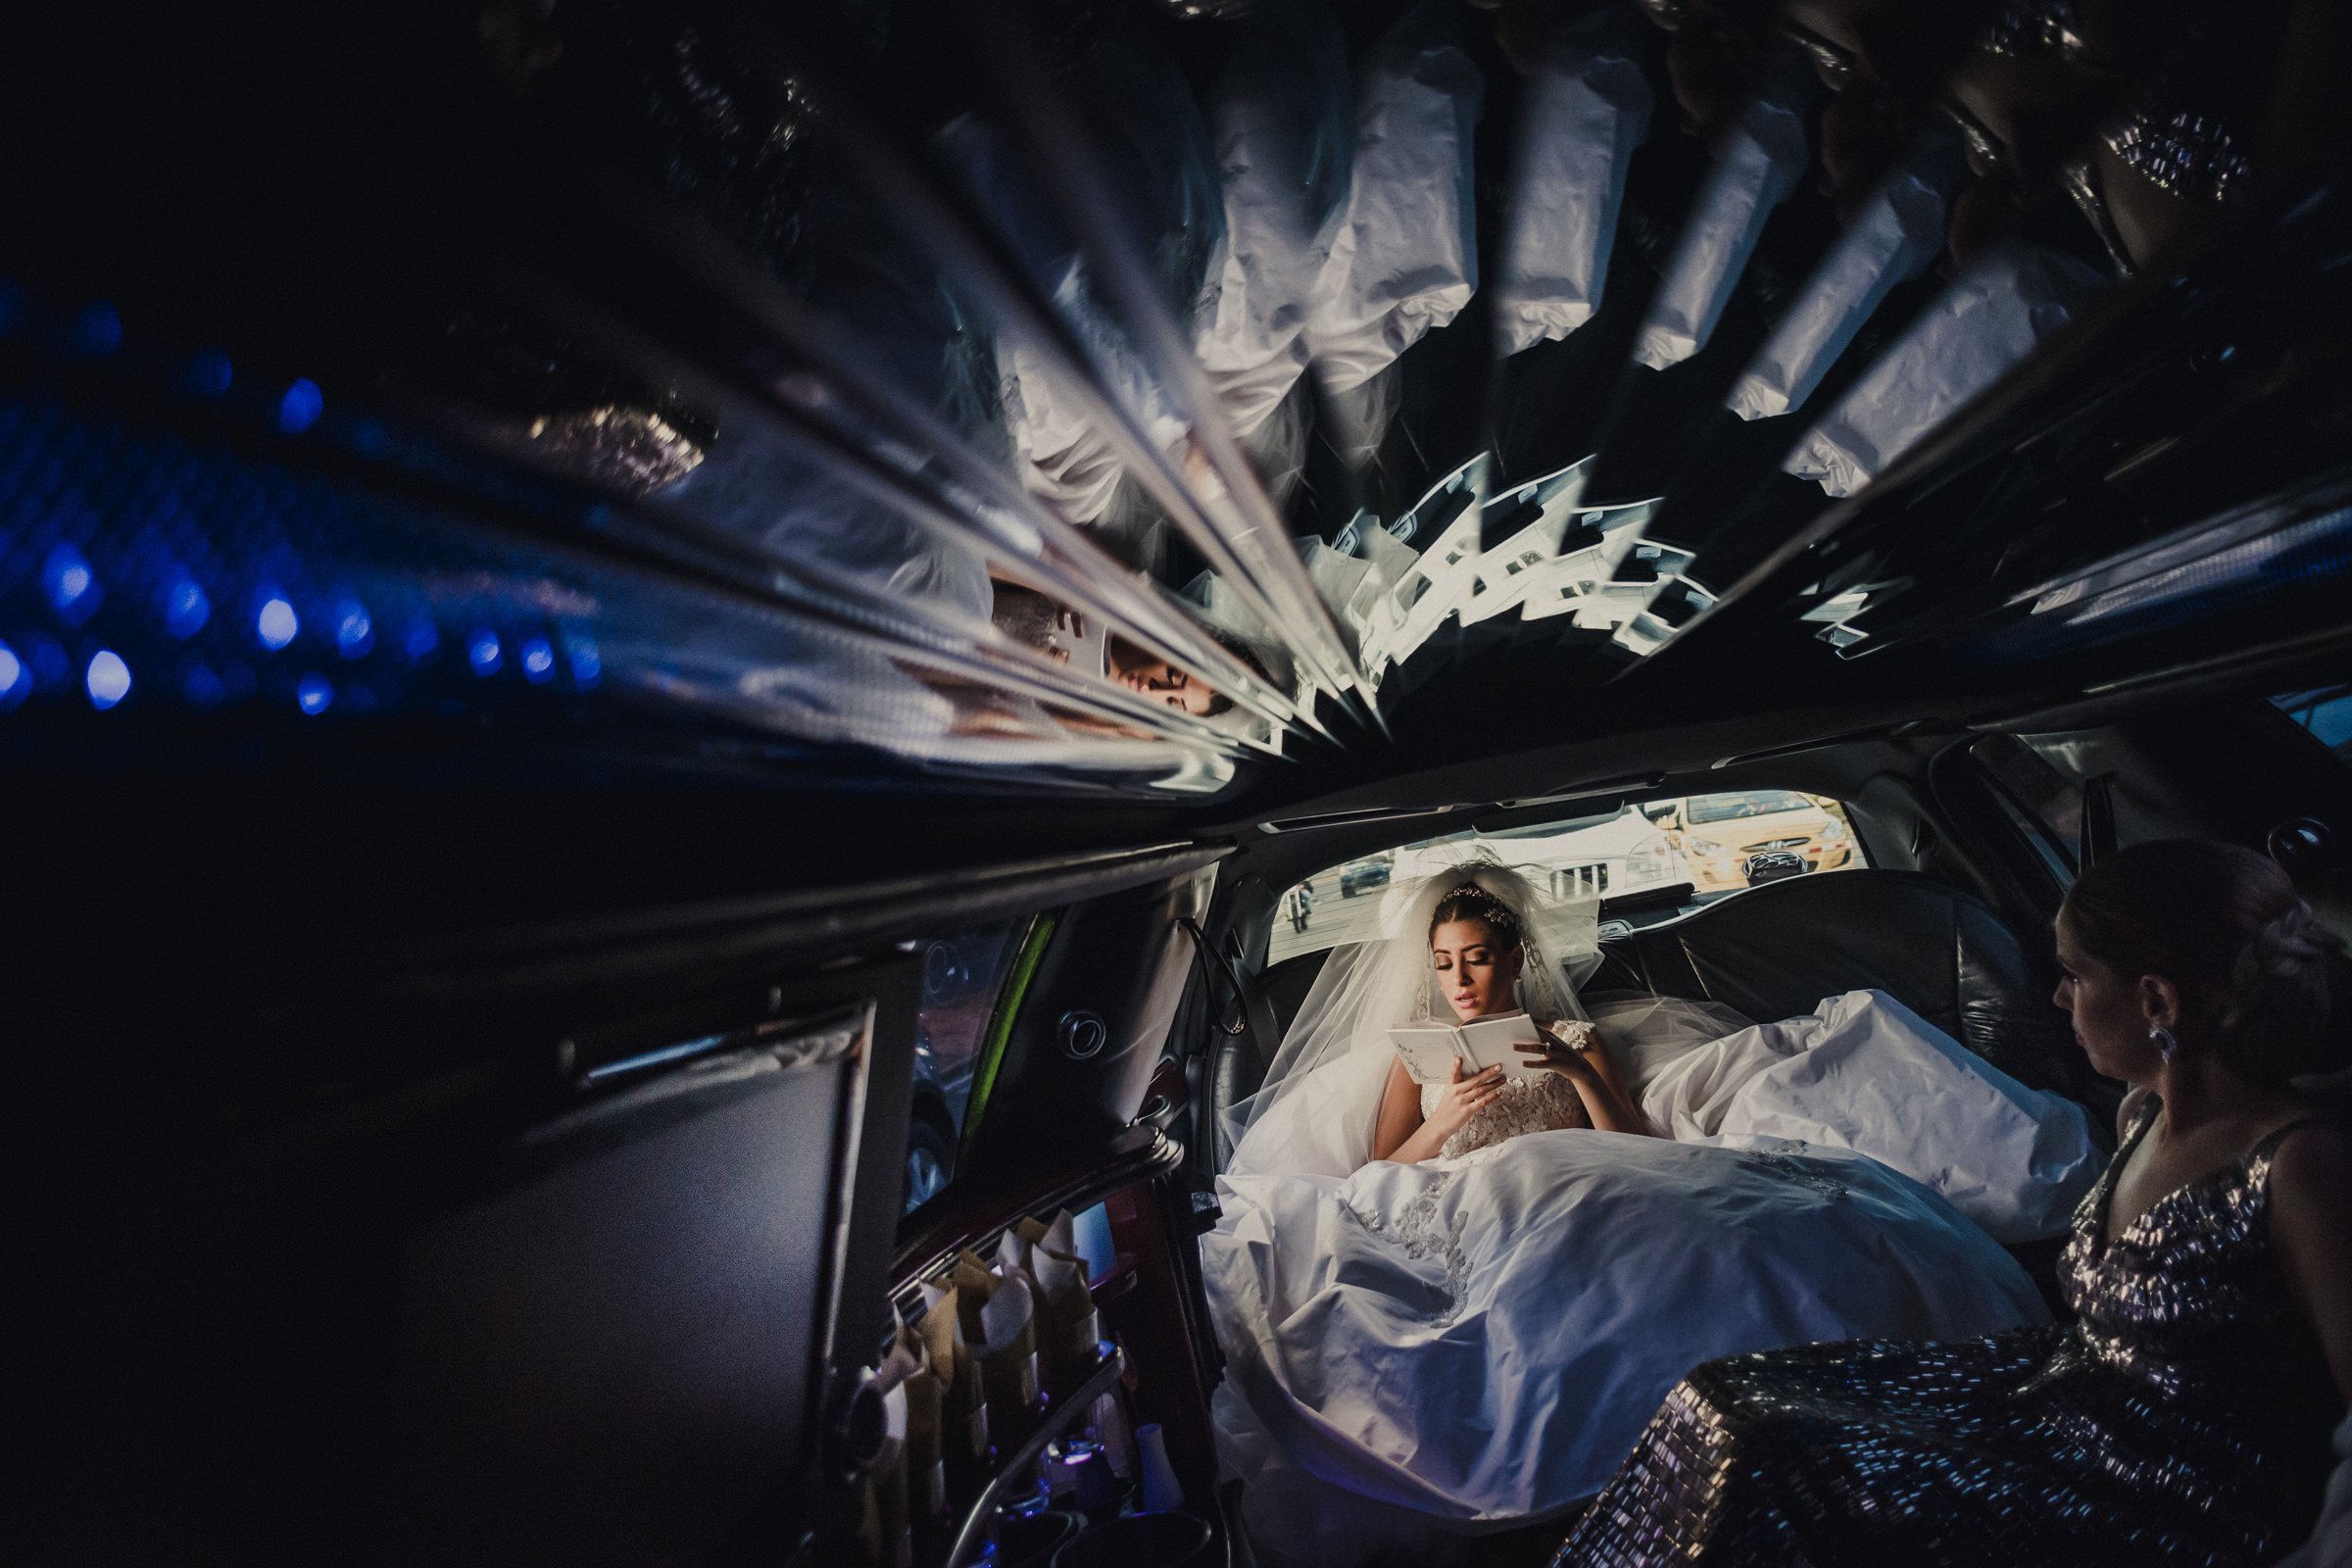 Bride reflected in limousine ceiling - photo by El Marco Rojo